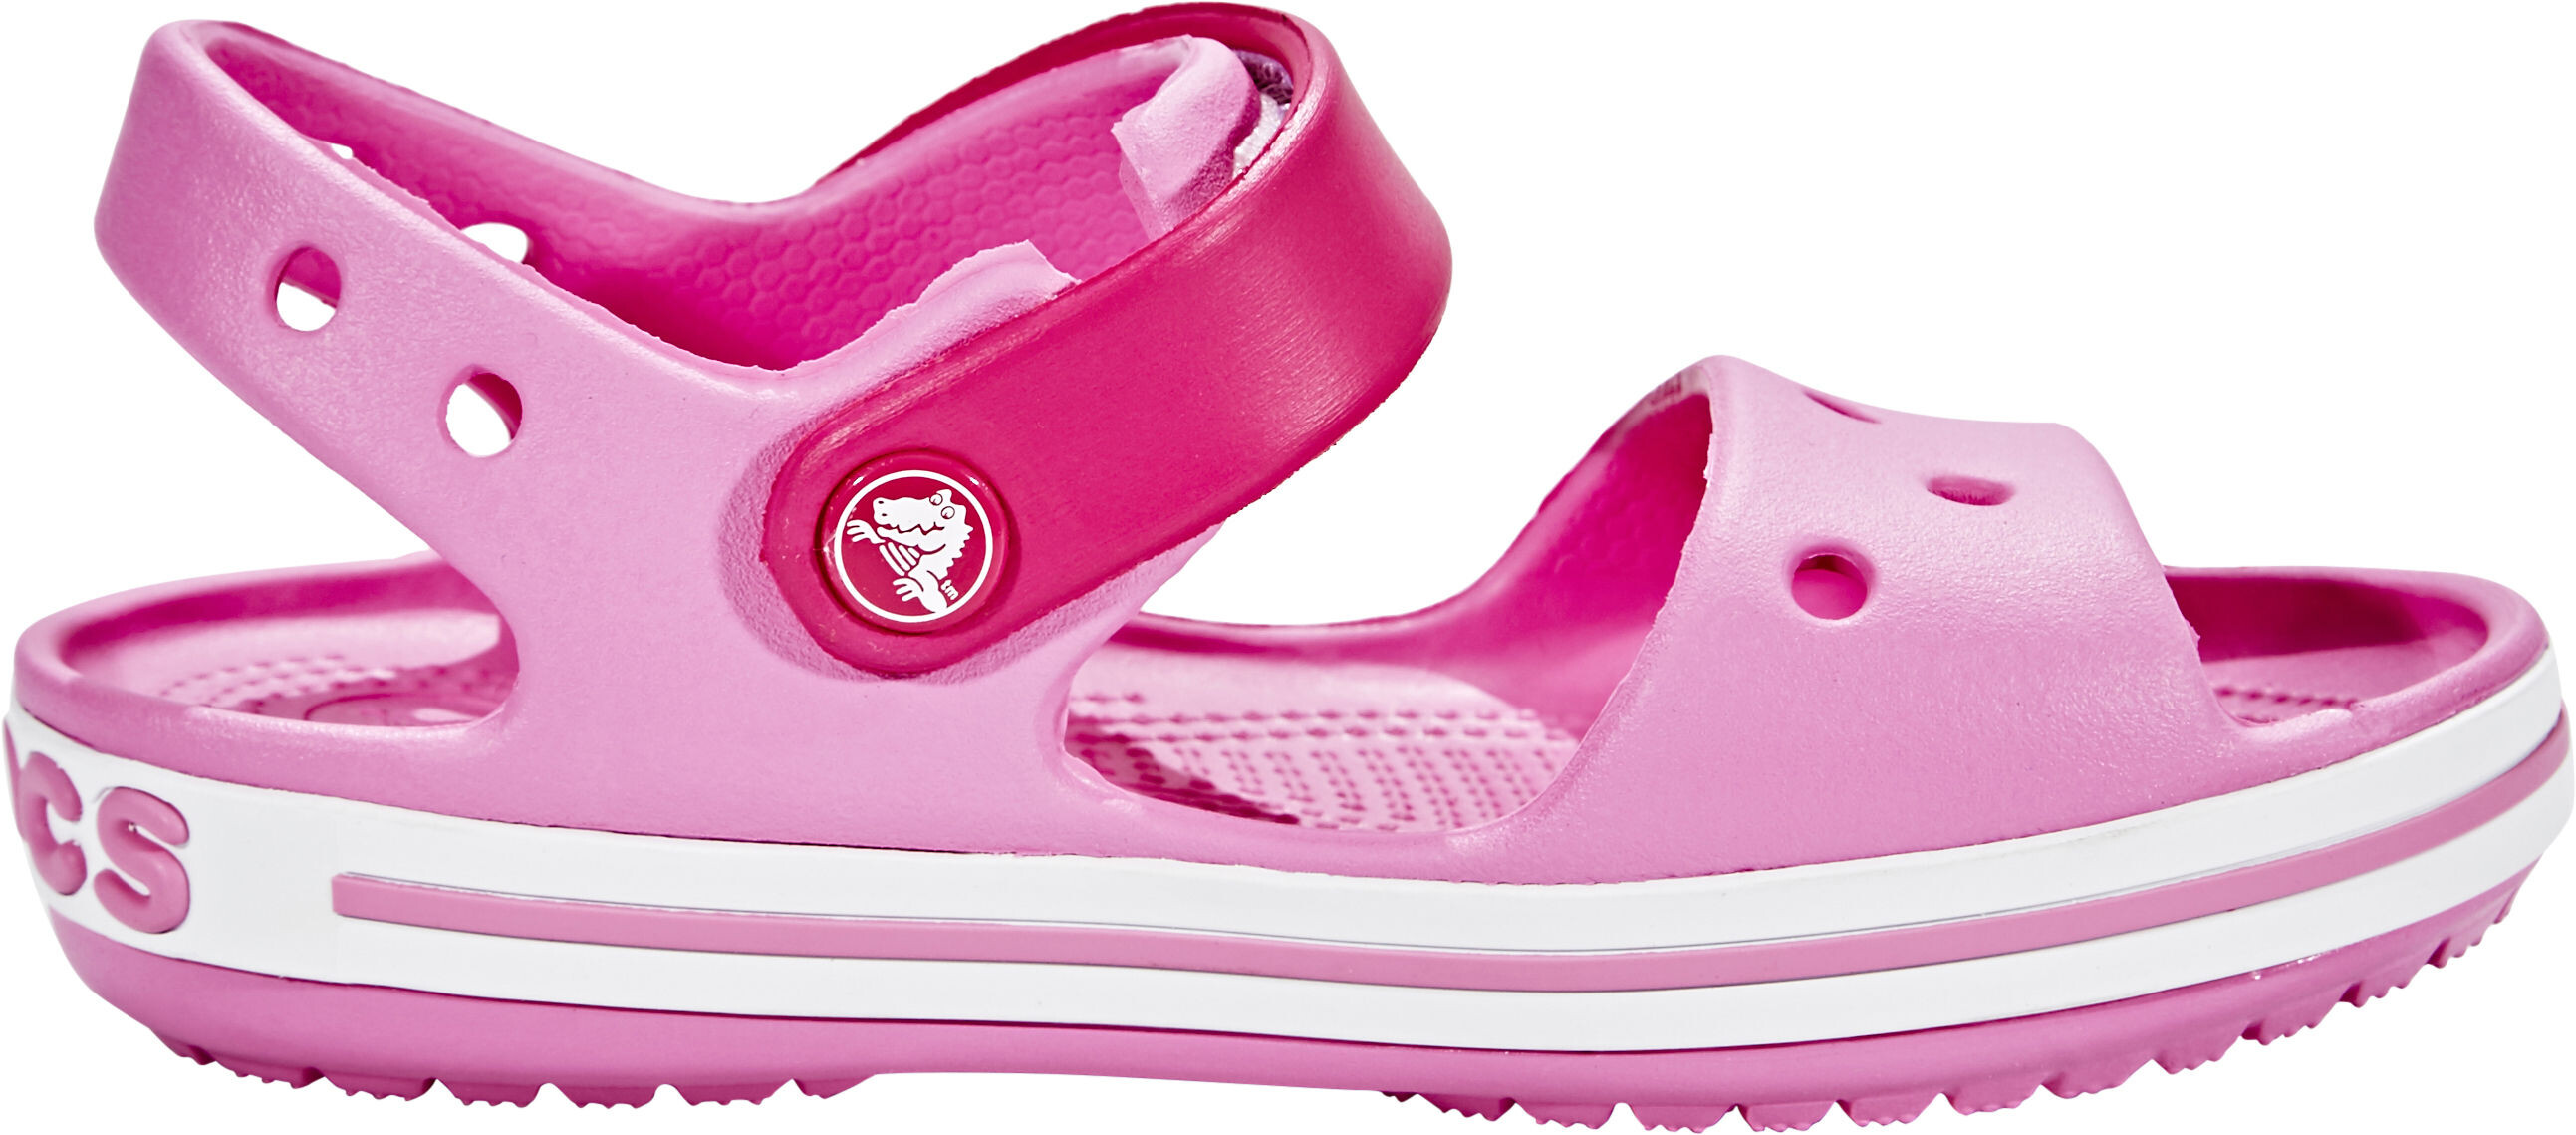 85cac5c8daa9 Crocs Crocband Sandals Kids candy pink party pink at Addnature.co.uk